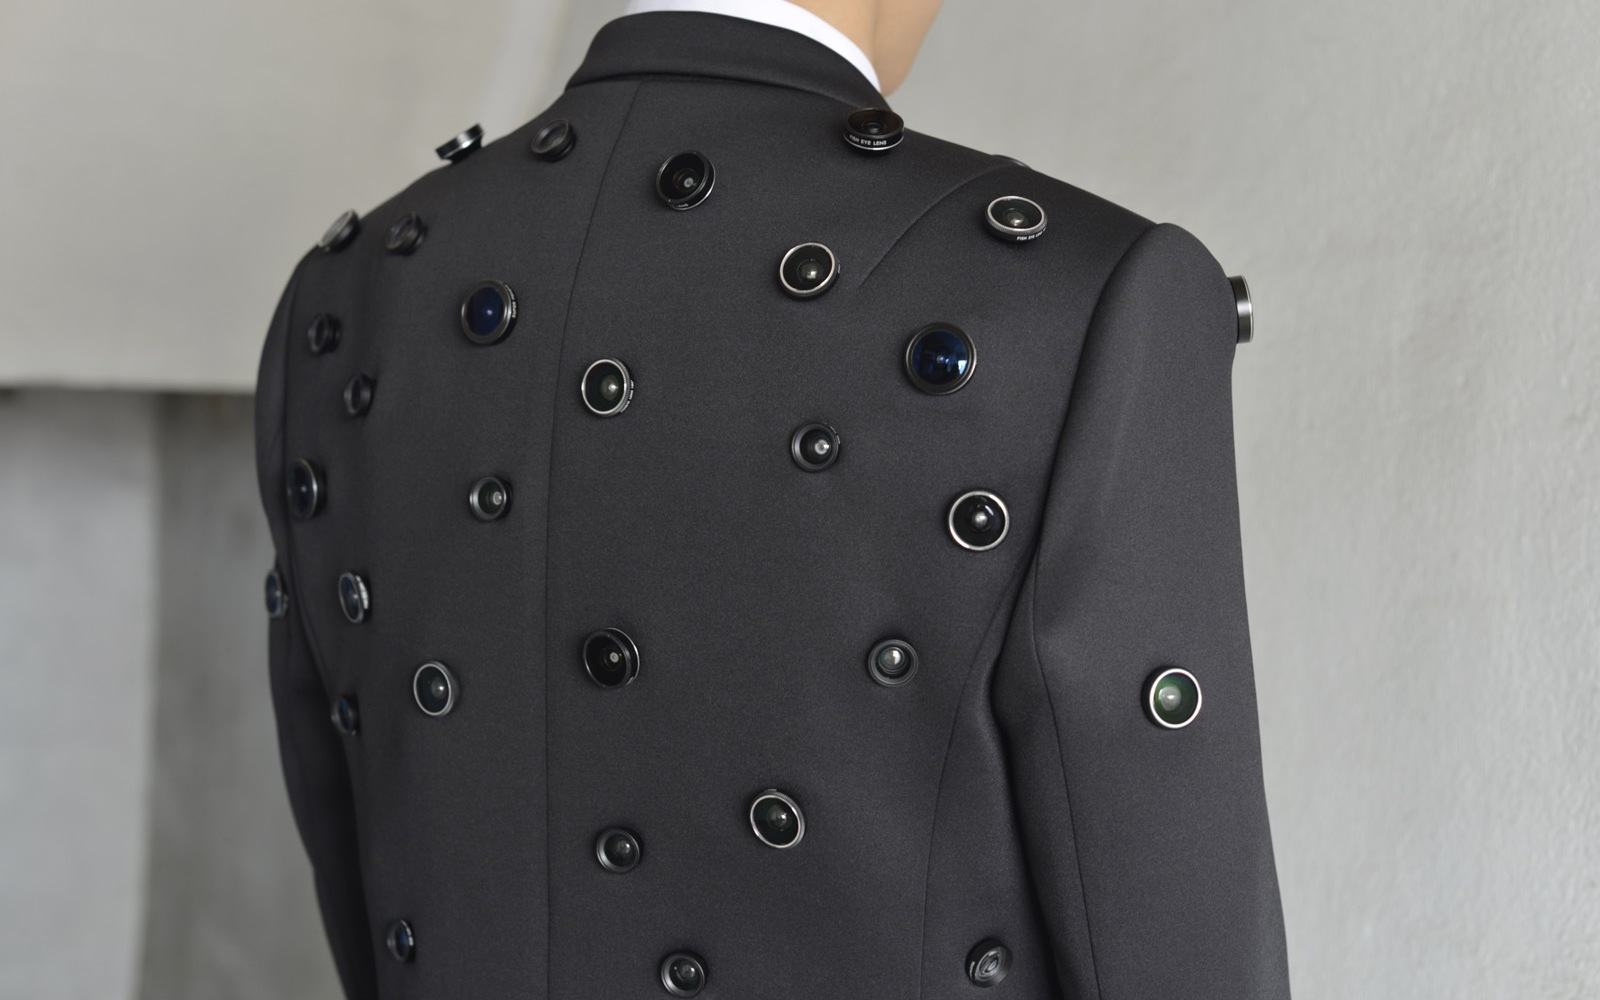 Aposematic Jacket – Wearable computer for self-defense